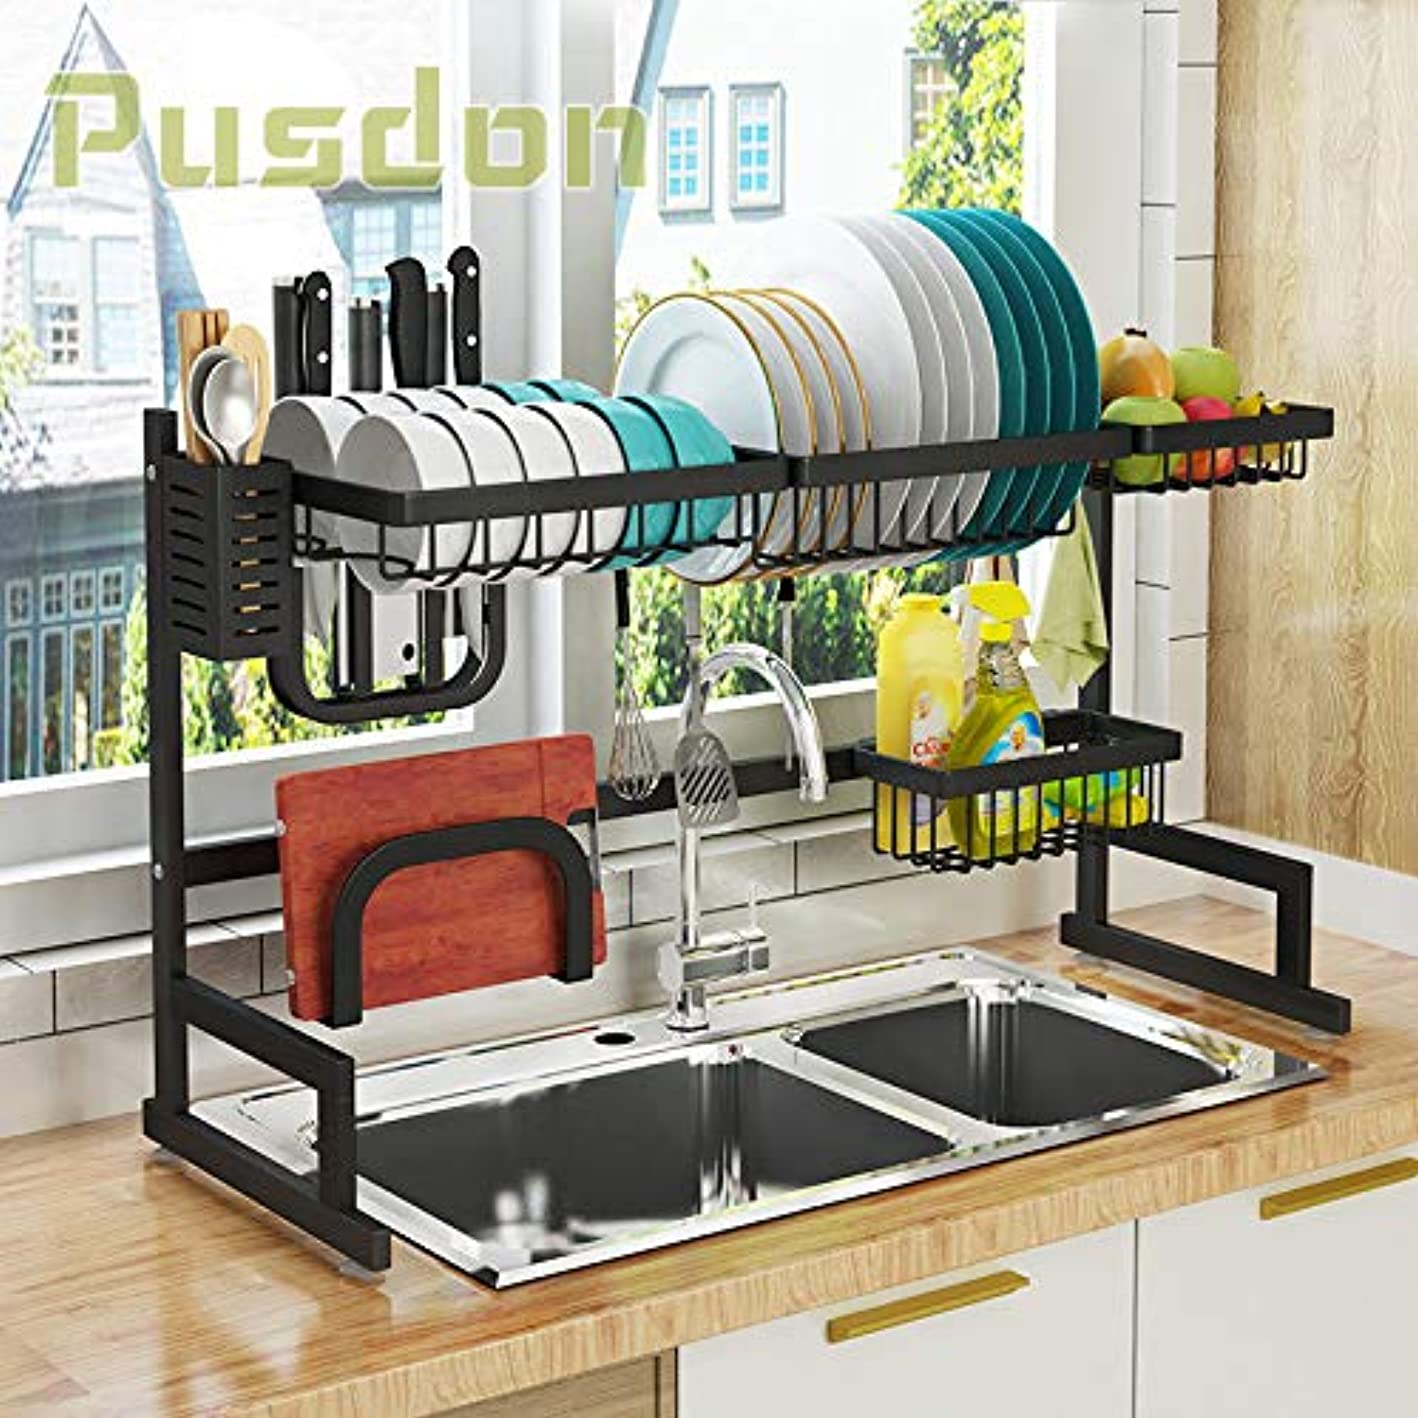 Dish Drying Rack Over Sink, Drainer Shelf for Kitchen Supplies Storage Counter Organizer Utensils Holder Stainless Steel Display- Kitchen Space Save Must Have (Sink size ≤ 32 1/2 inch, black)